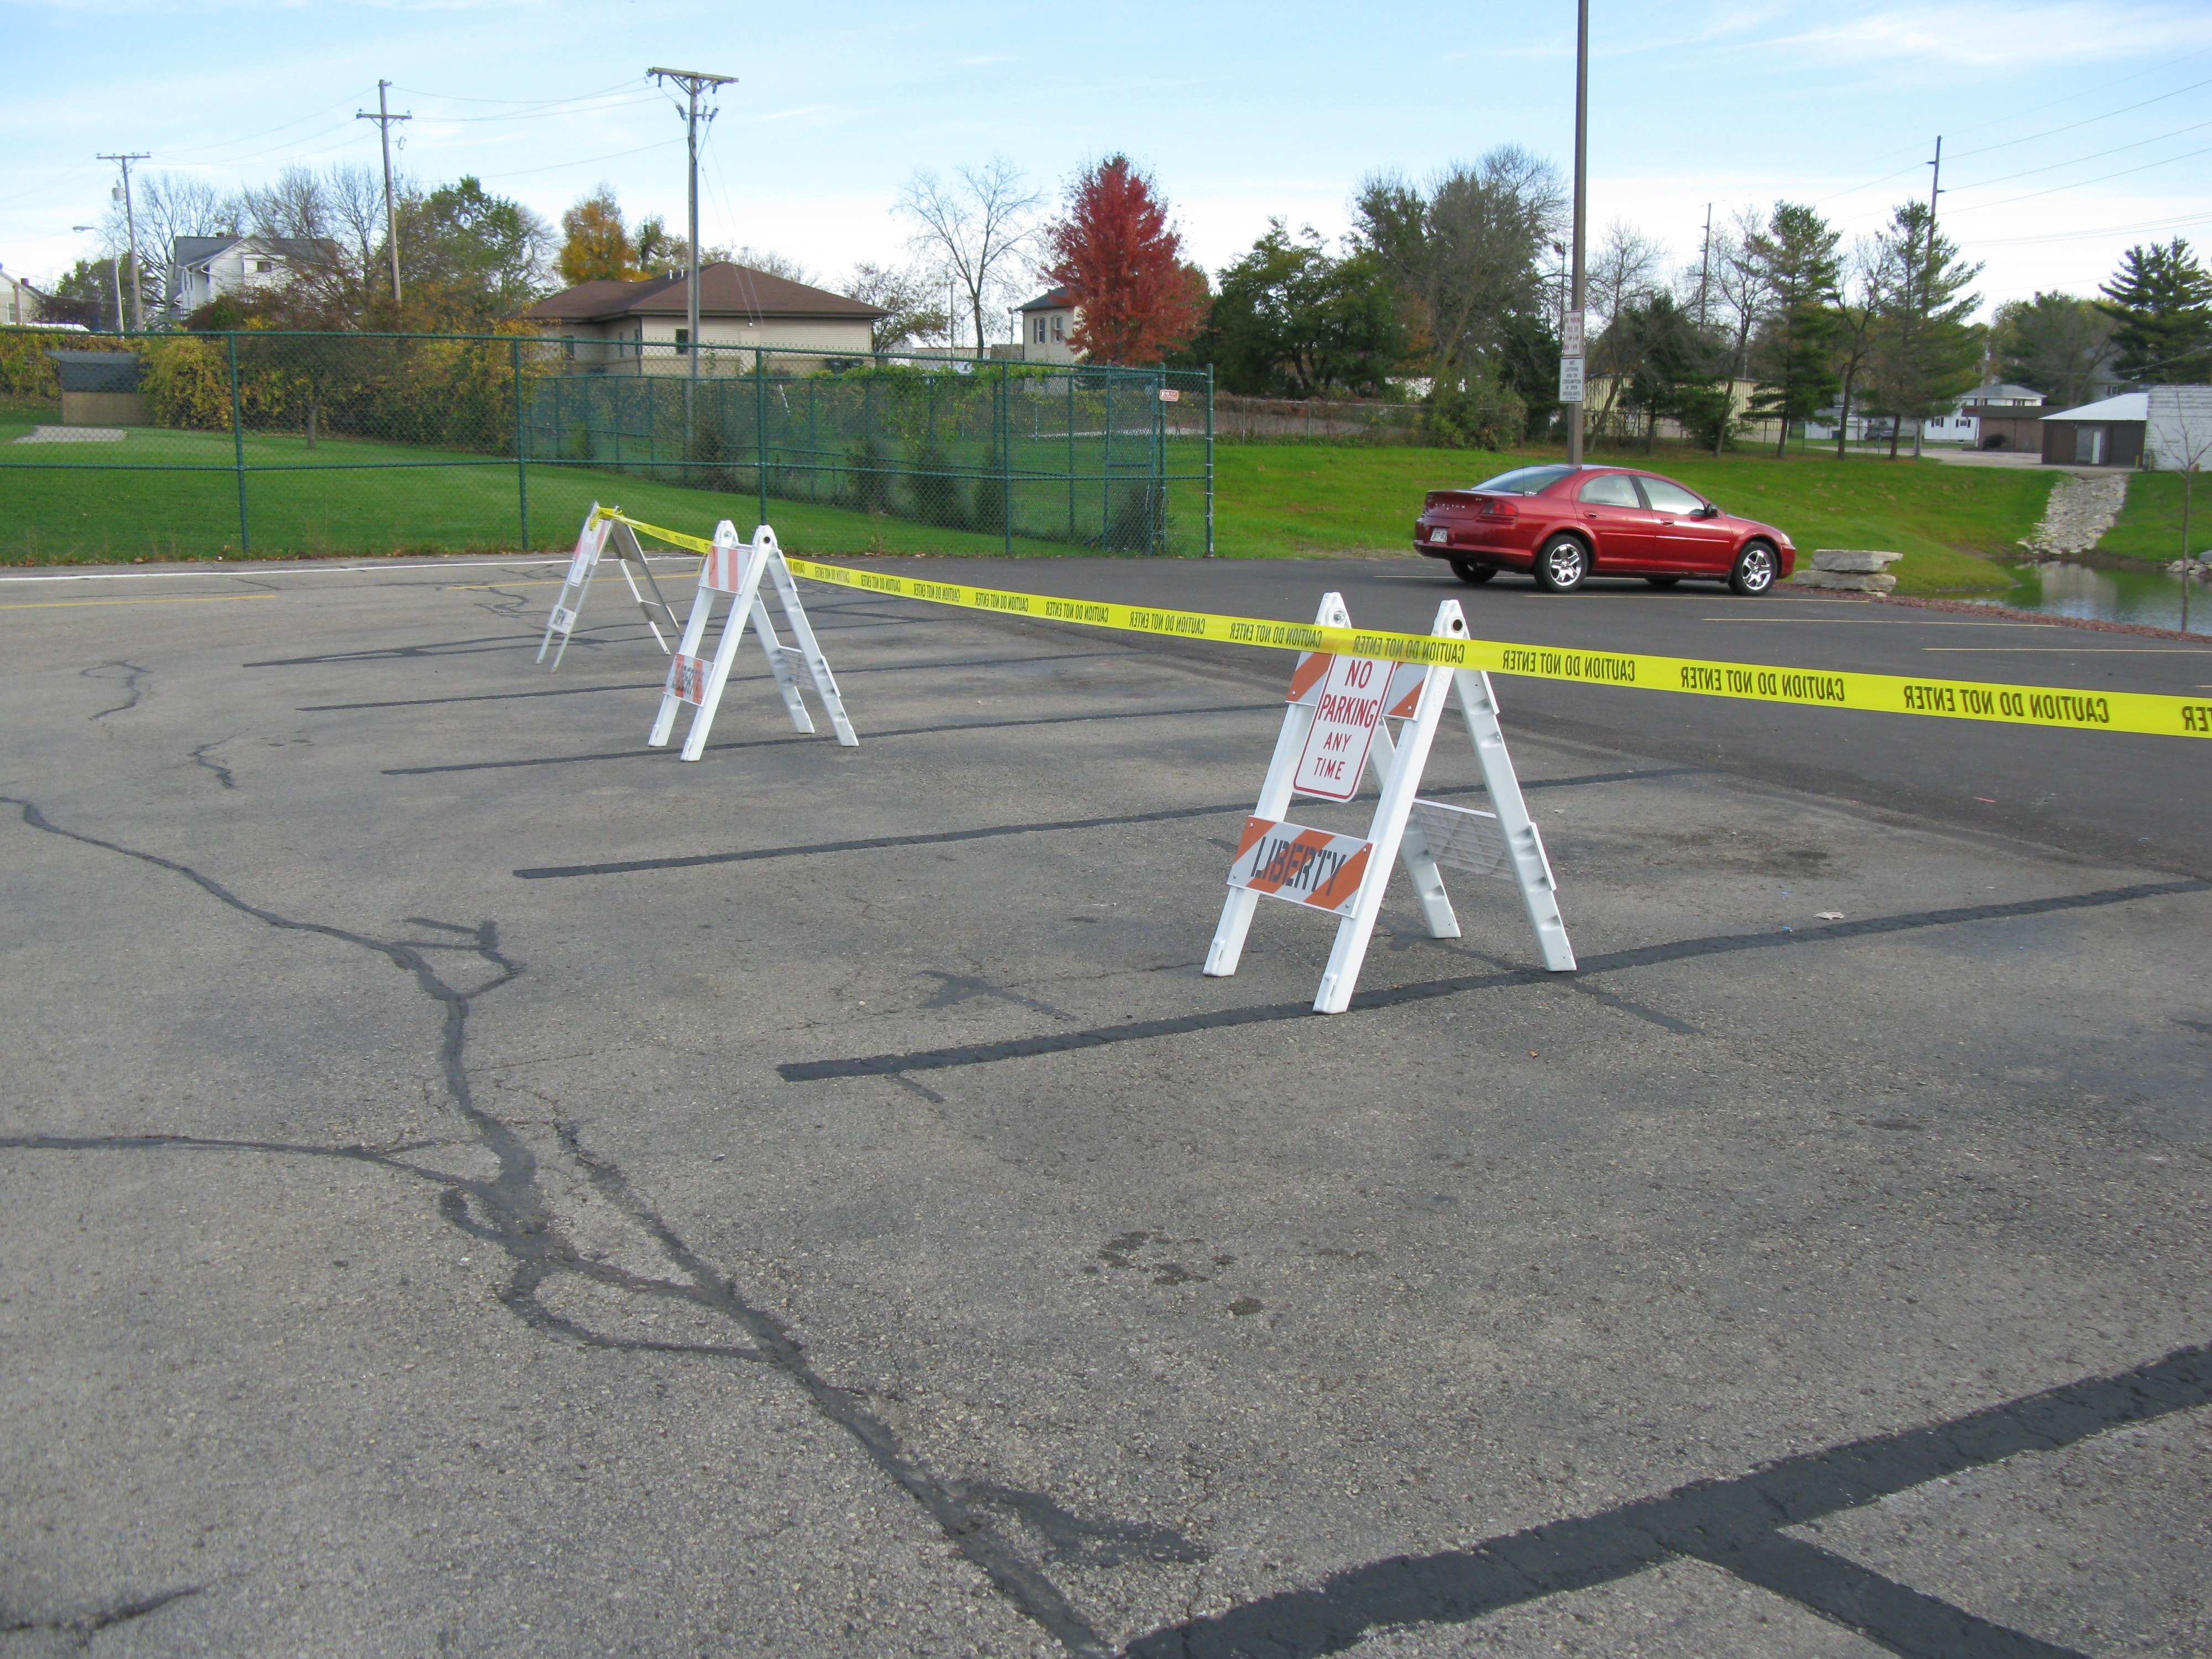 Parking stalls eliminated as part of the plan